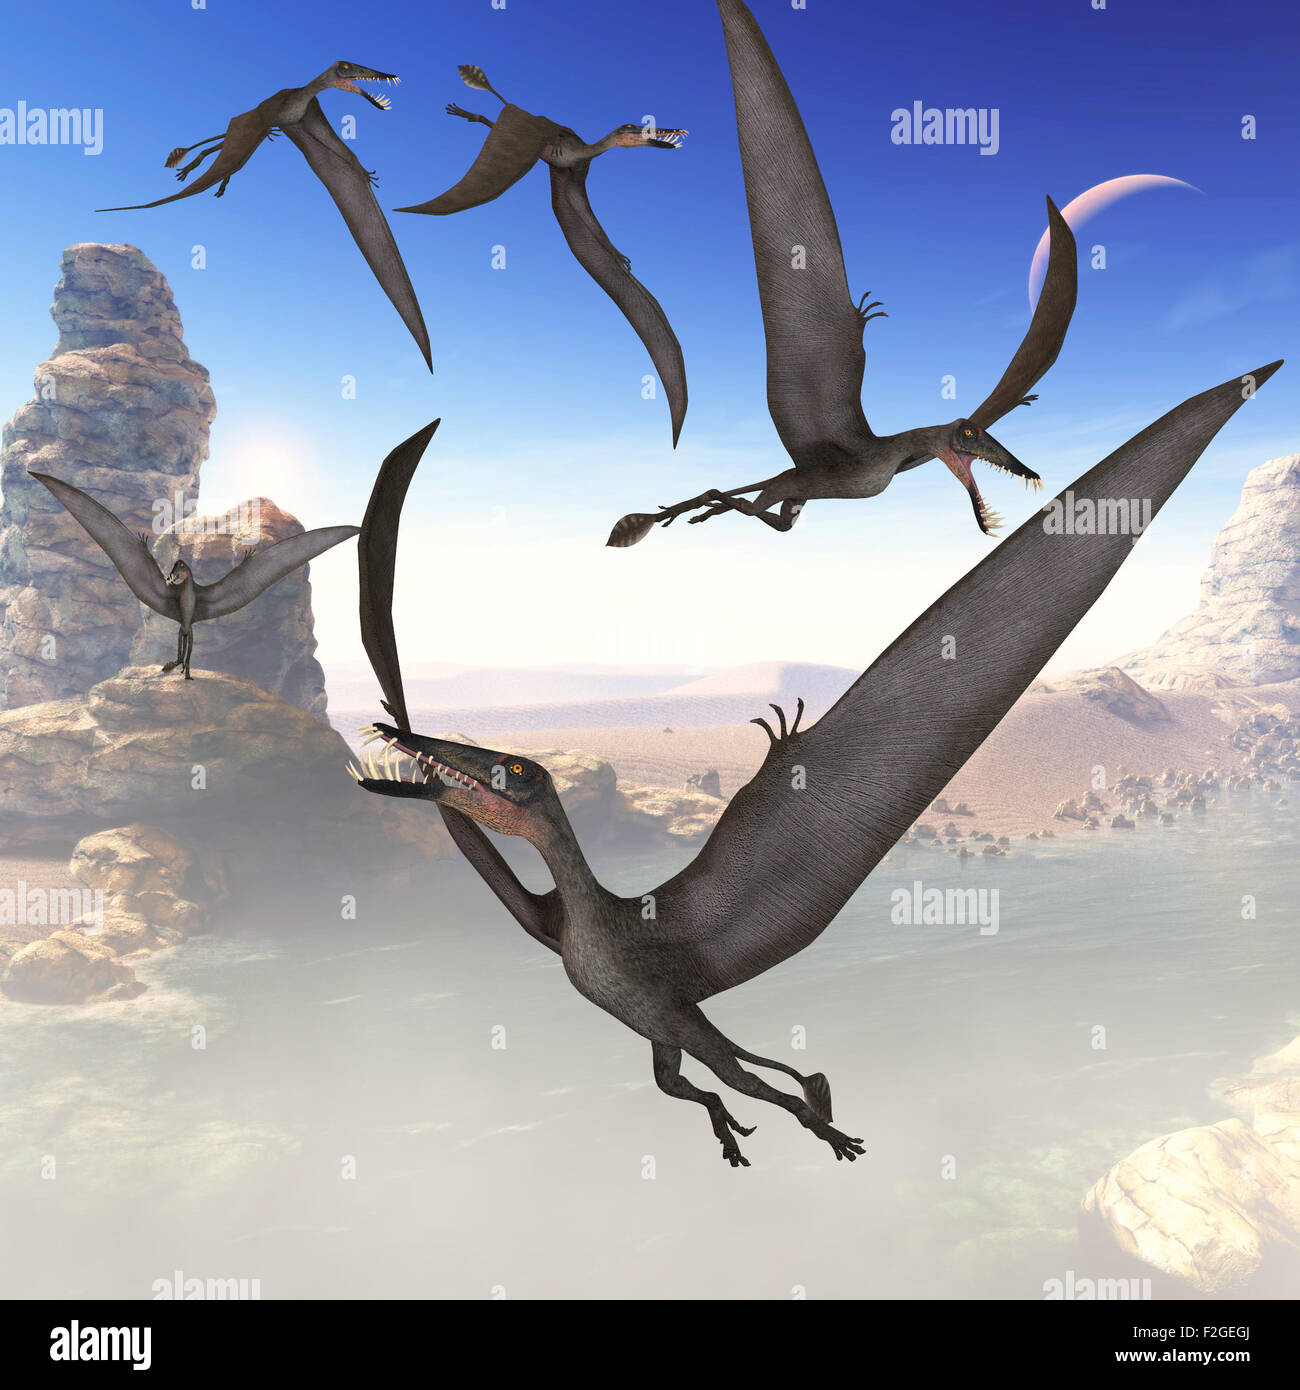 The Dorygnathus reptile was a predatory flying dinosaur that lived in the Jurassic Period of Europe. - Stock Image